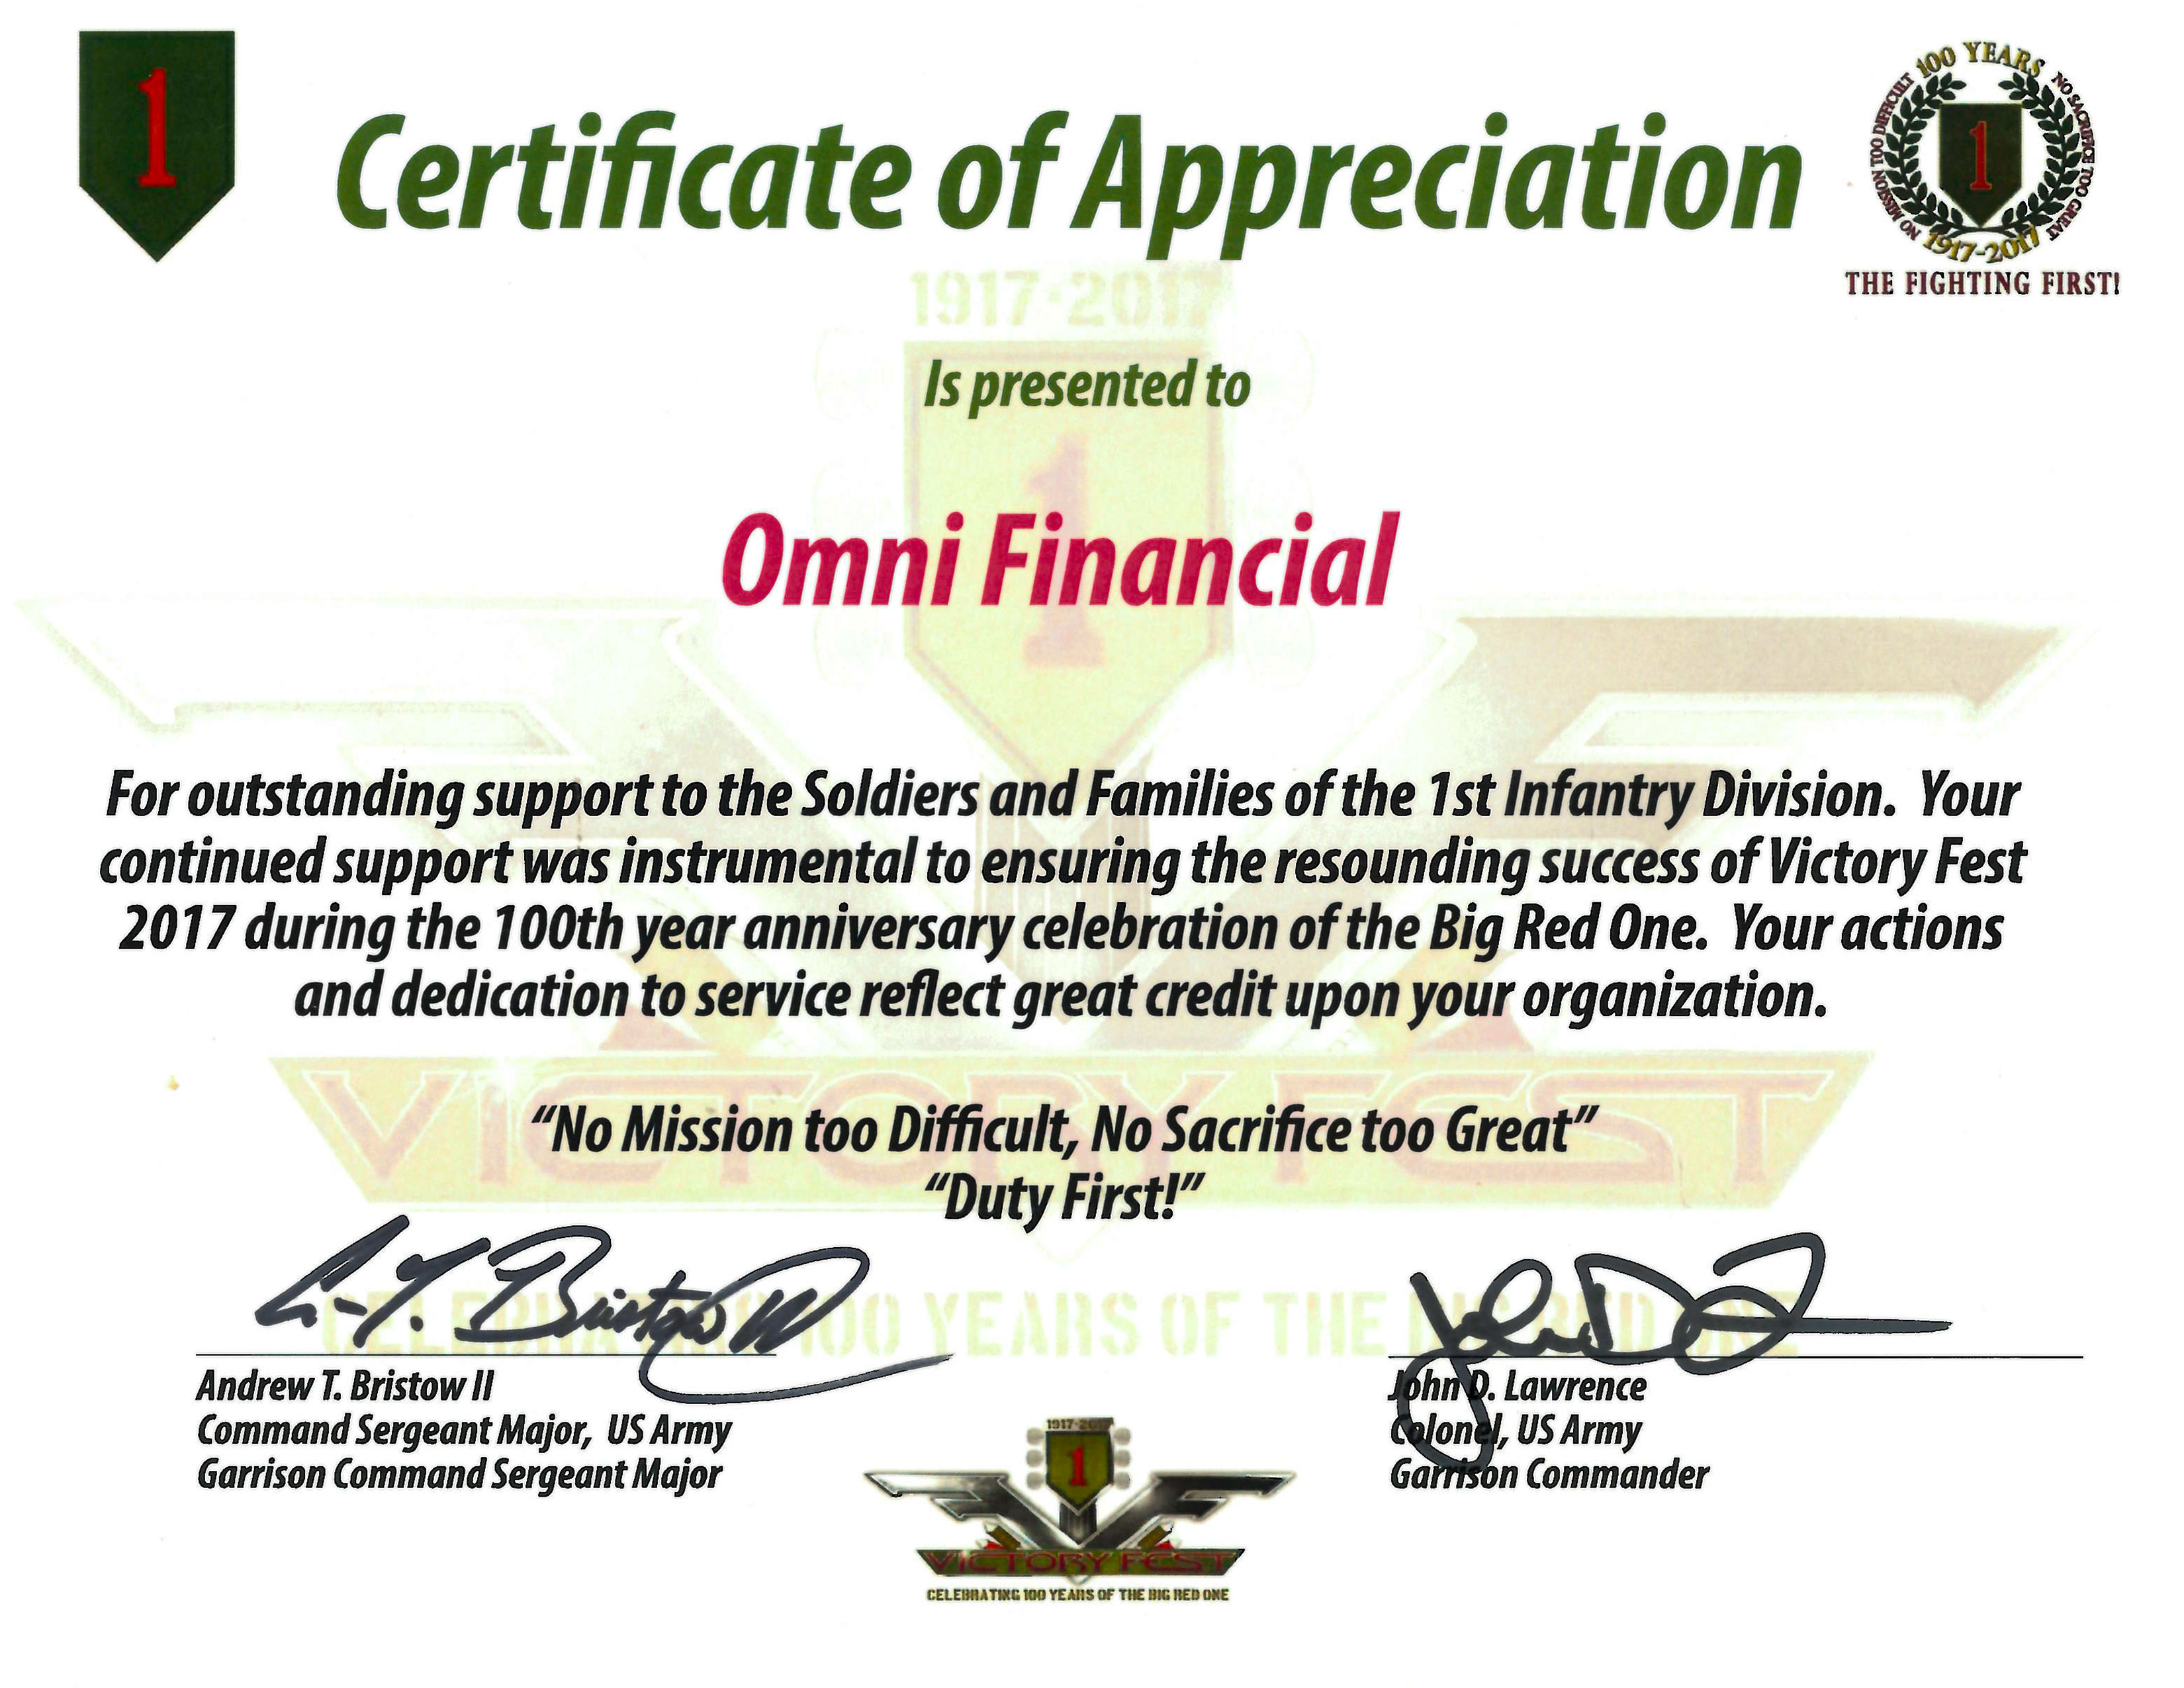 1st Infantry Division certificate of appreciation victory fest